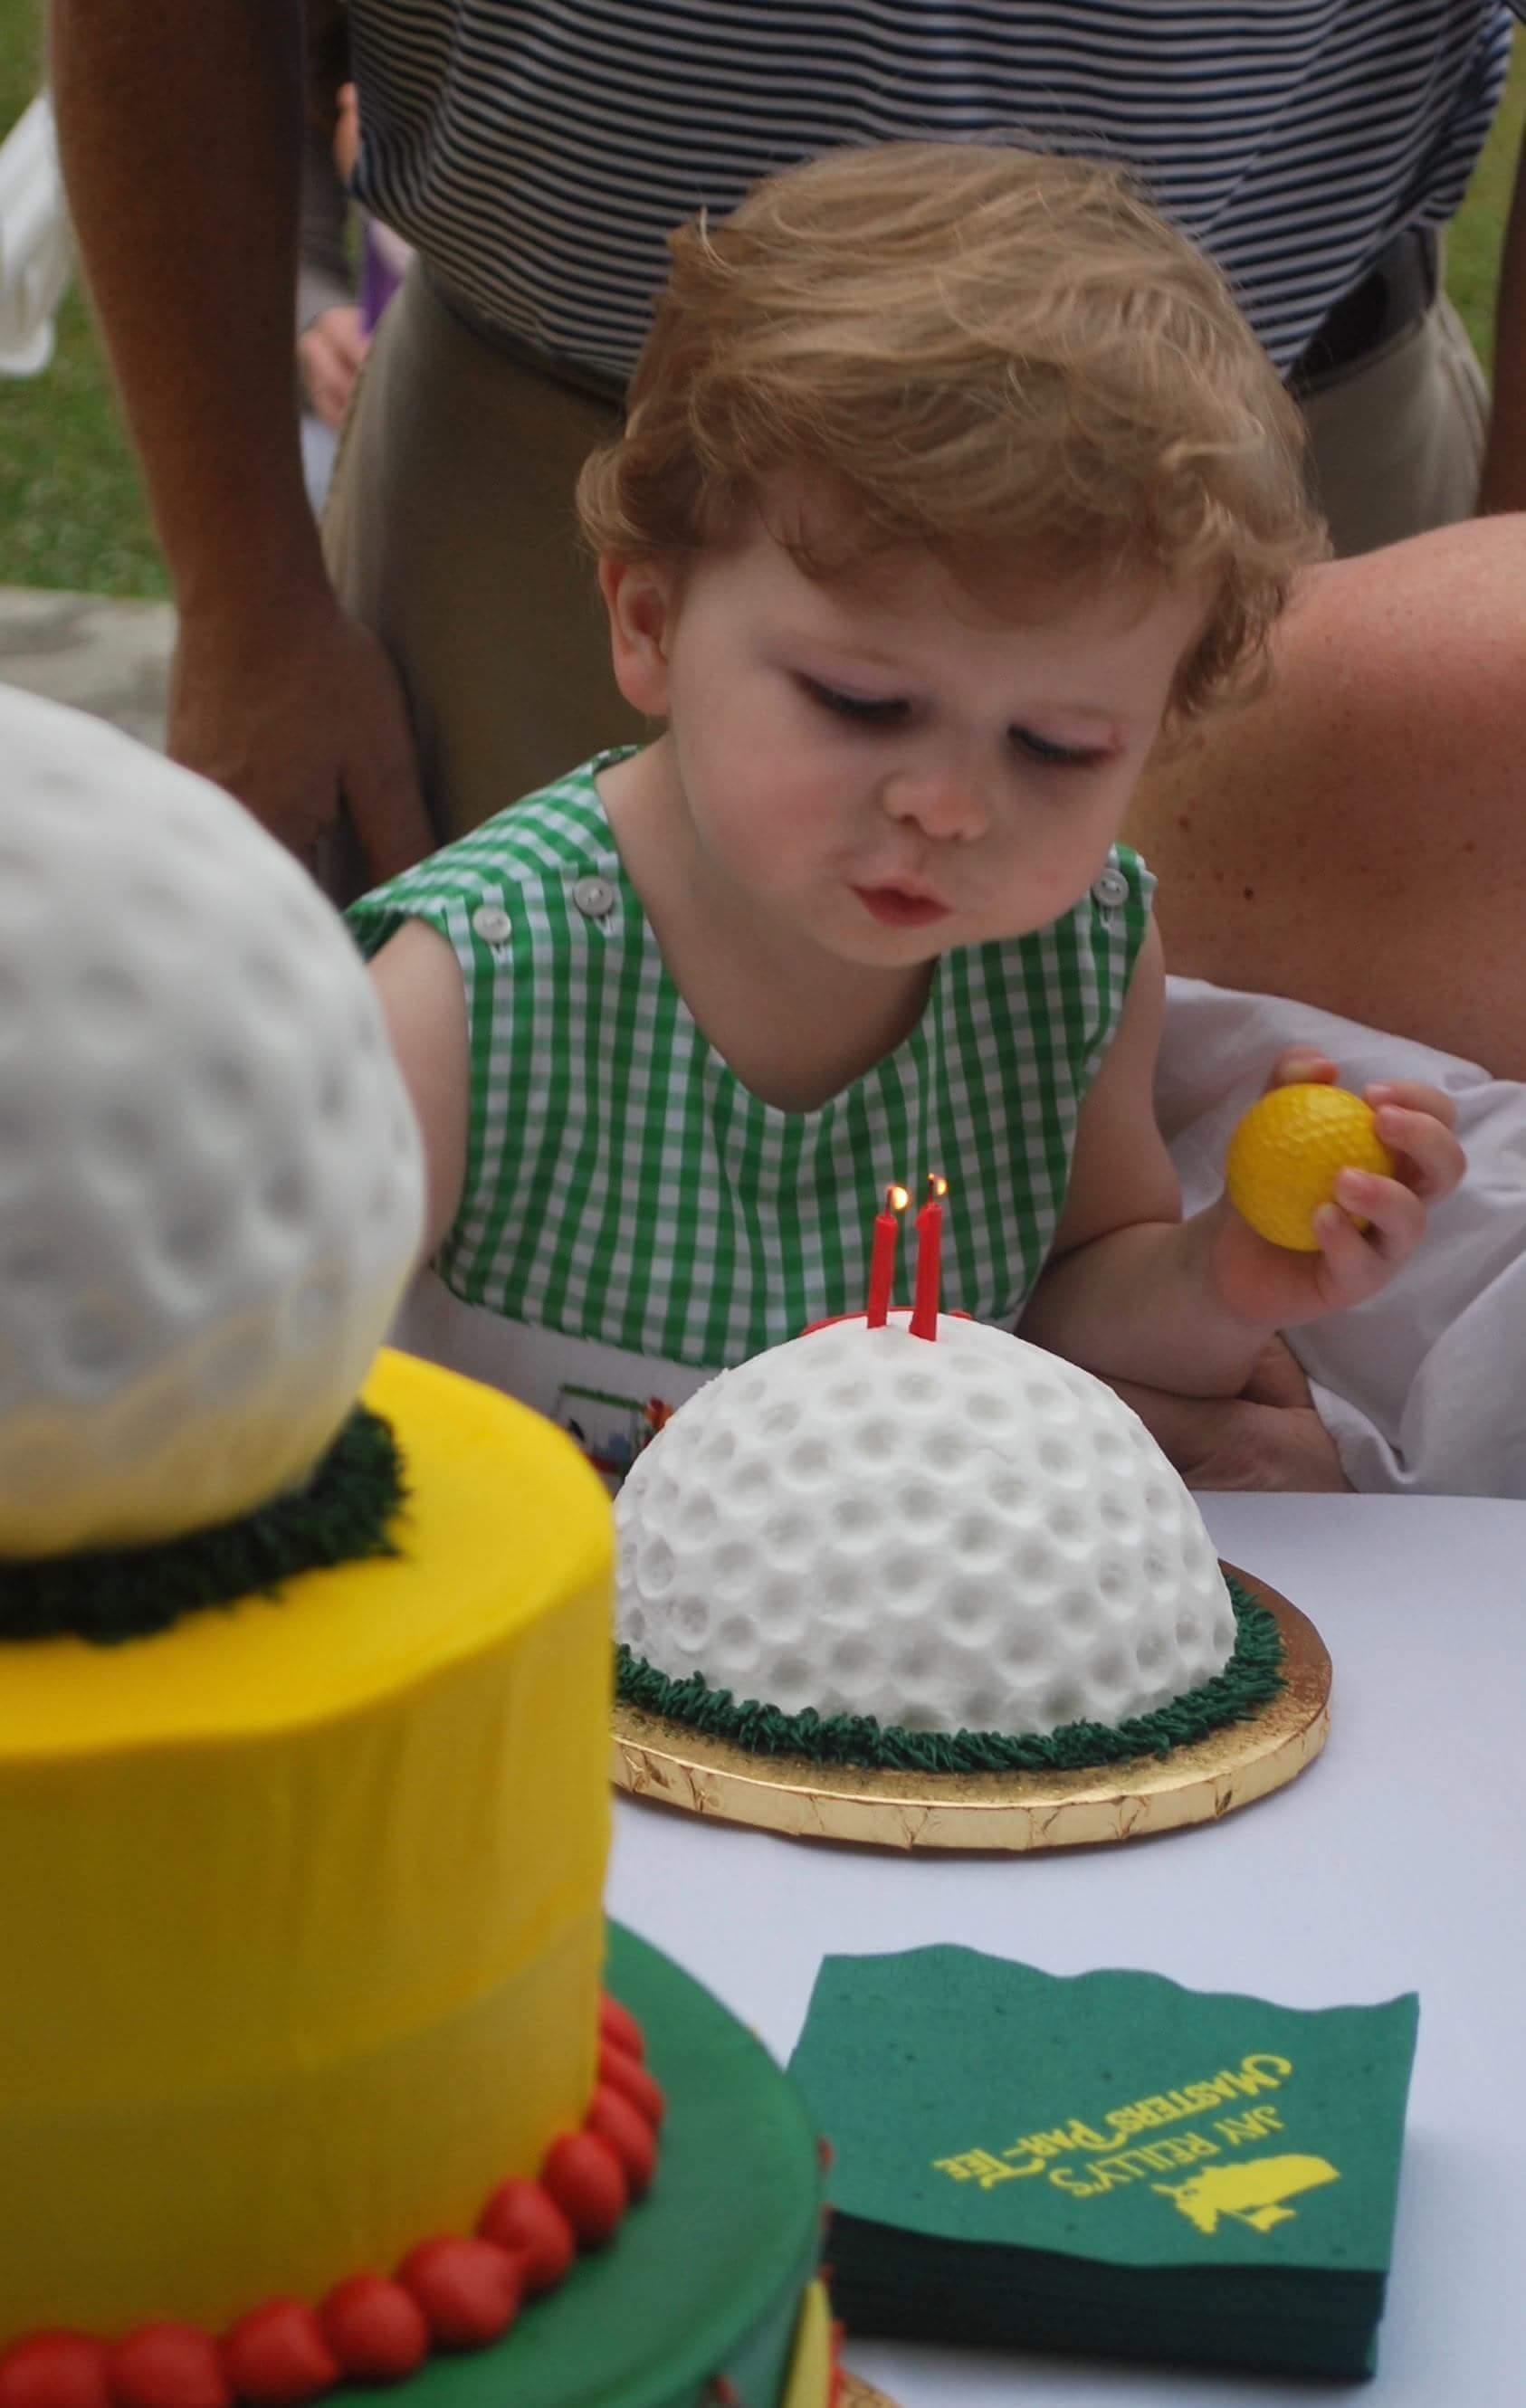 Blowing out candles on golf birthday cake